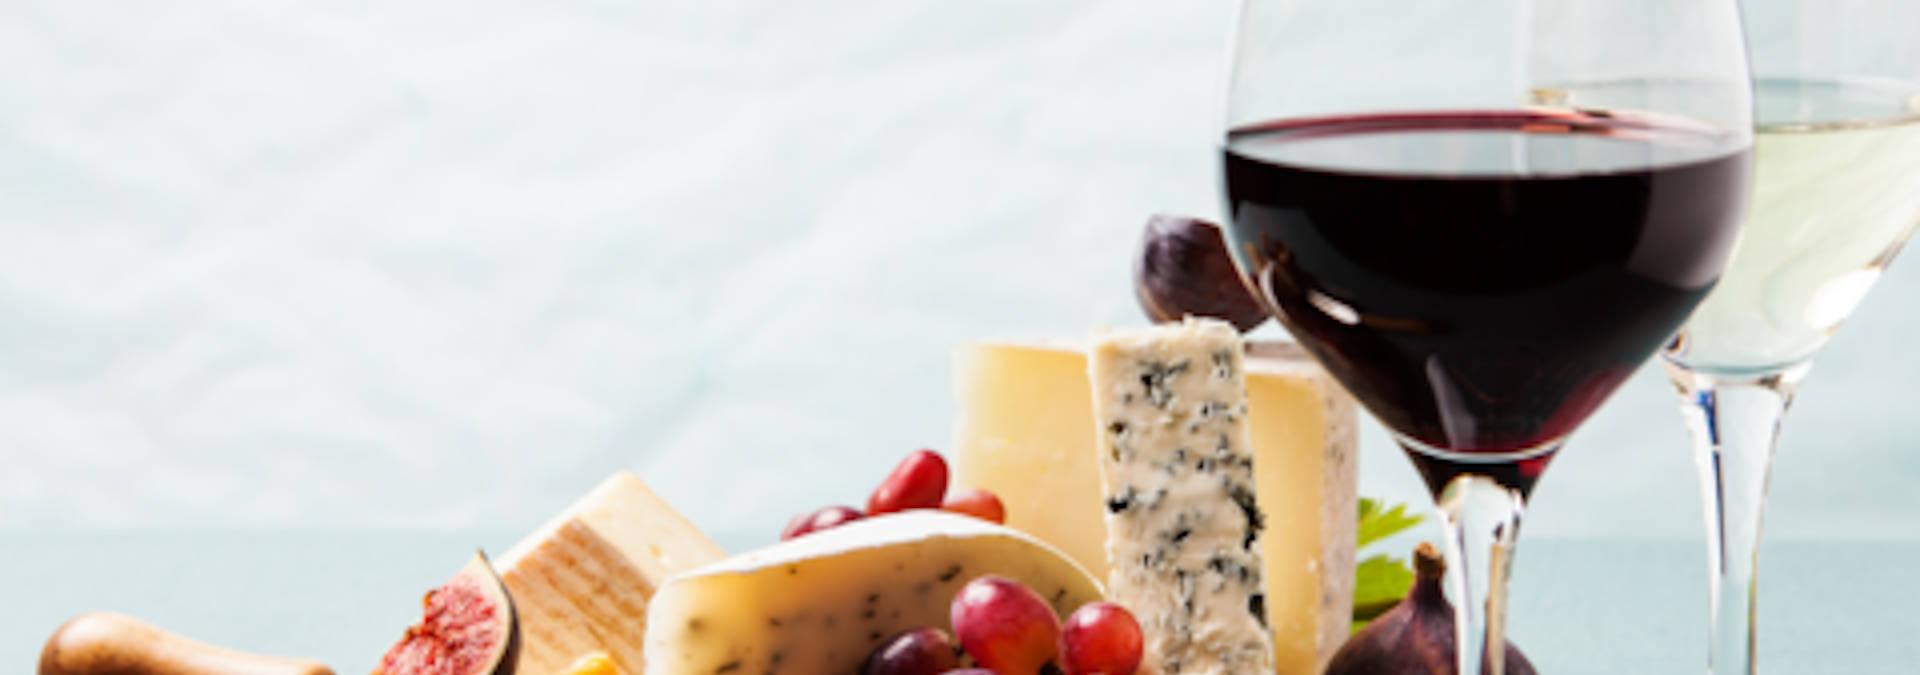 Visite Gourmande : accord vins & fromages